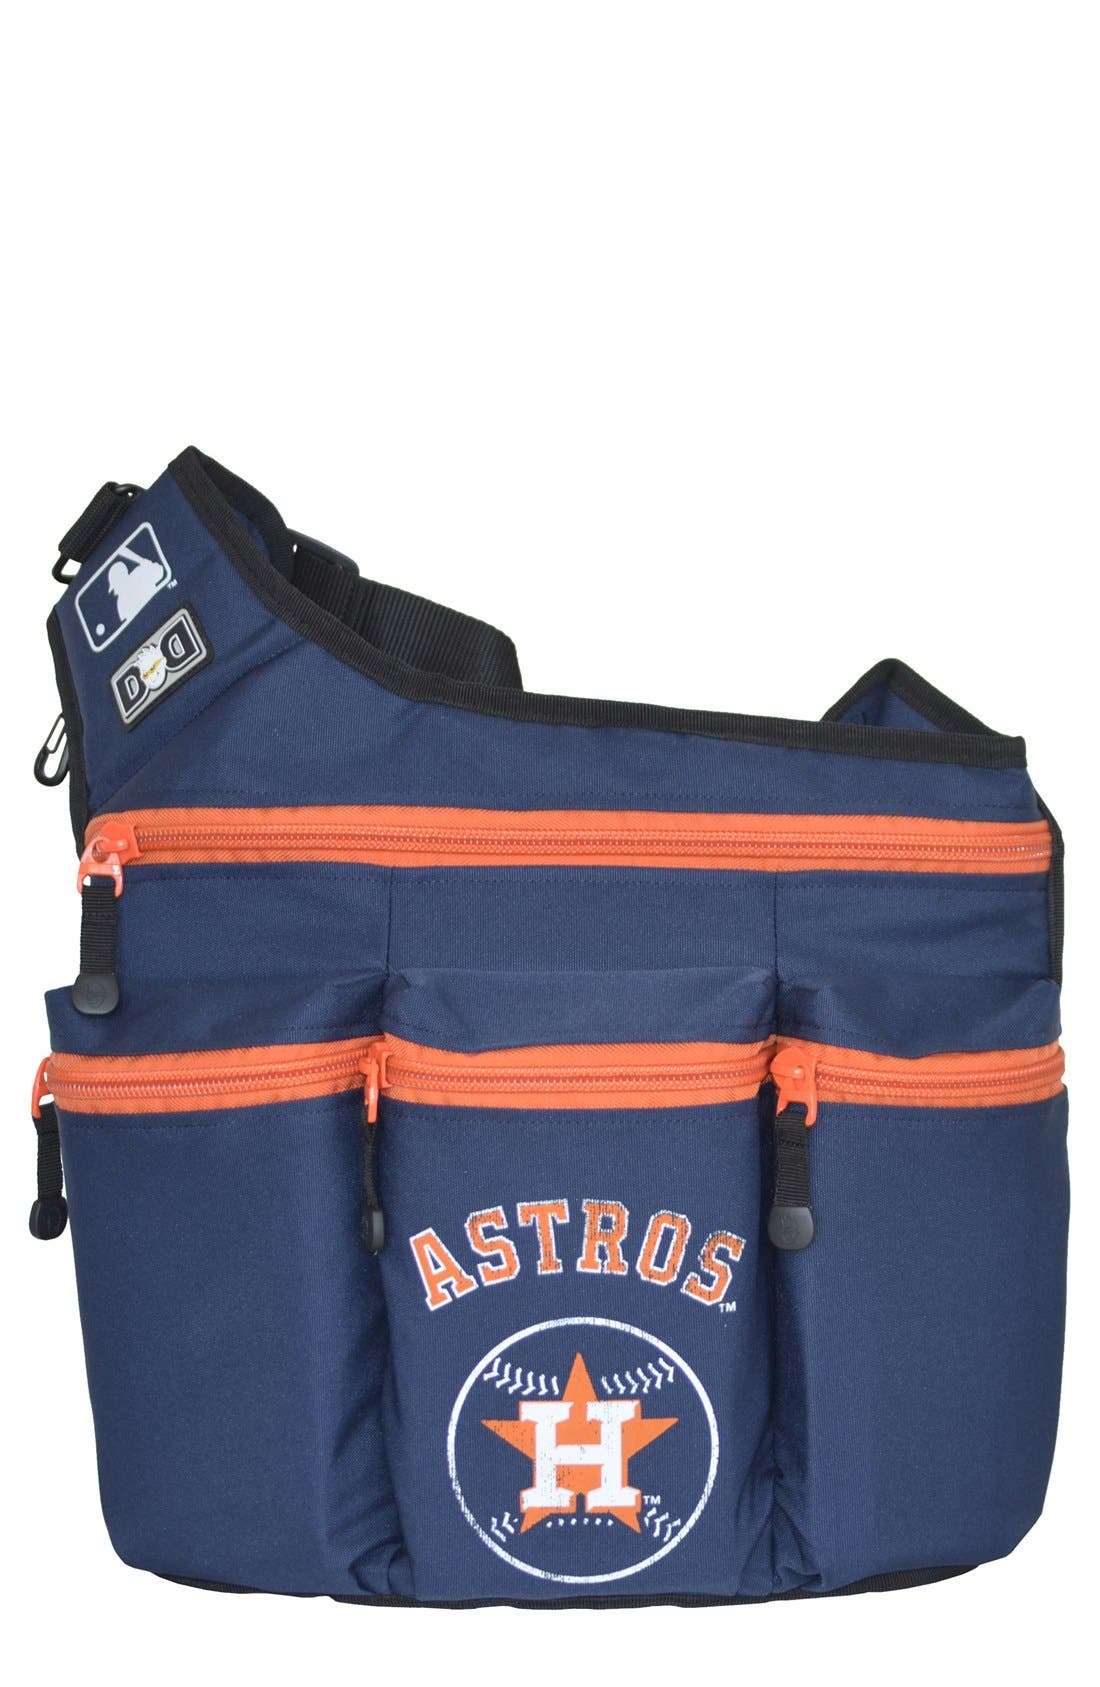 Main Image - Diaper Dude 'Houston Astros' Messenger Diaper Bag